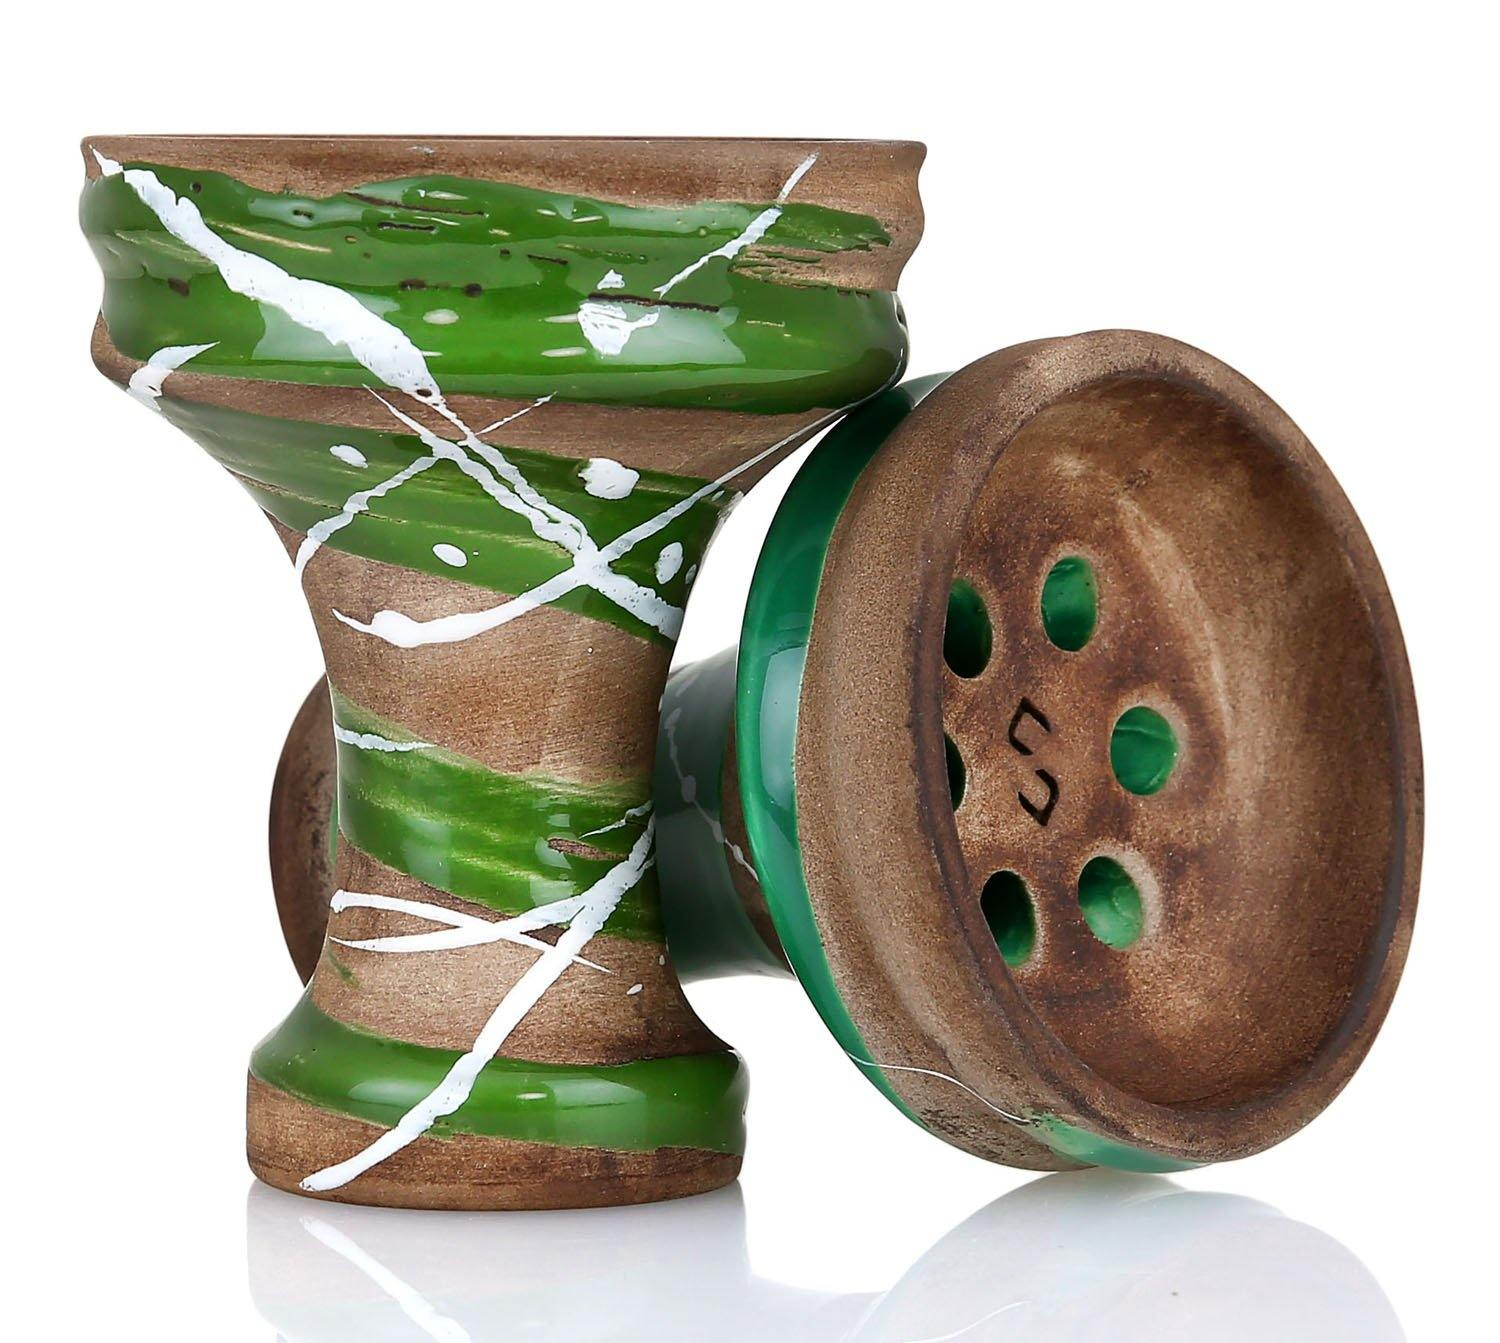 Conceptic Design Killer Shisha Bowl - Green - shishagear - UK